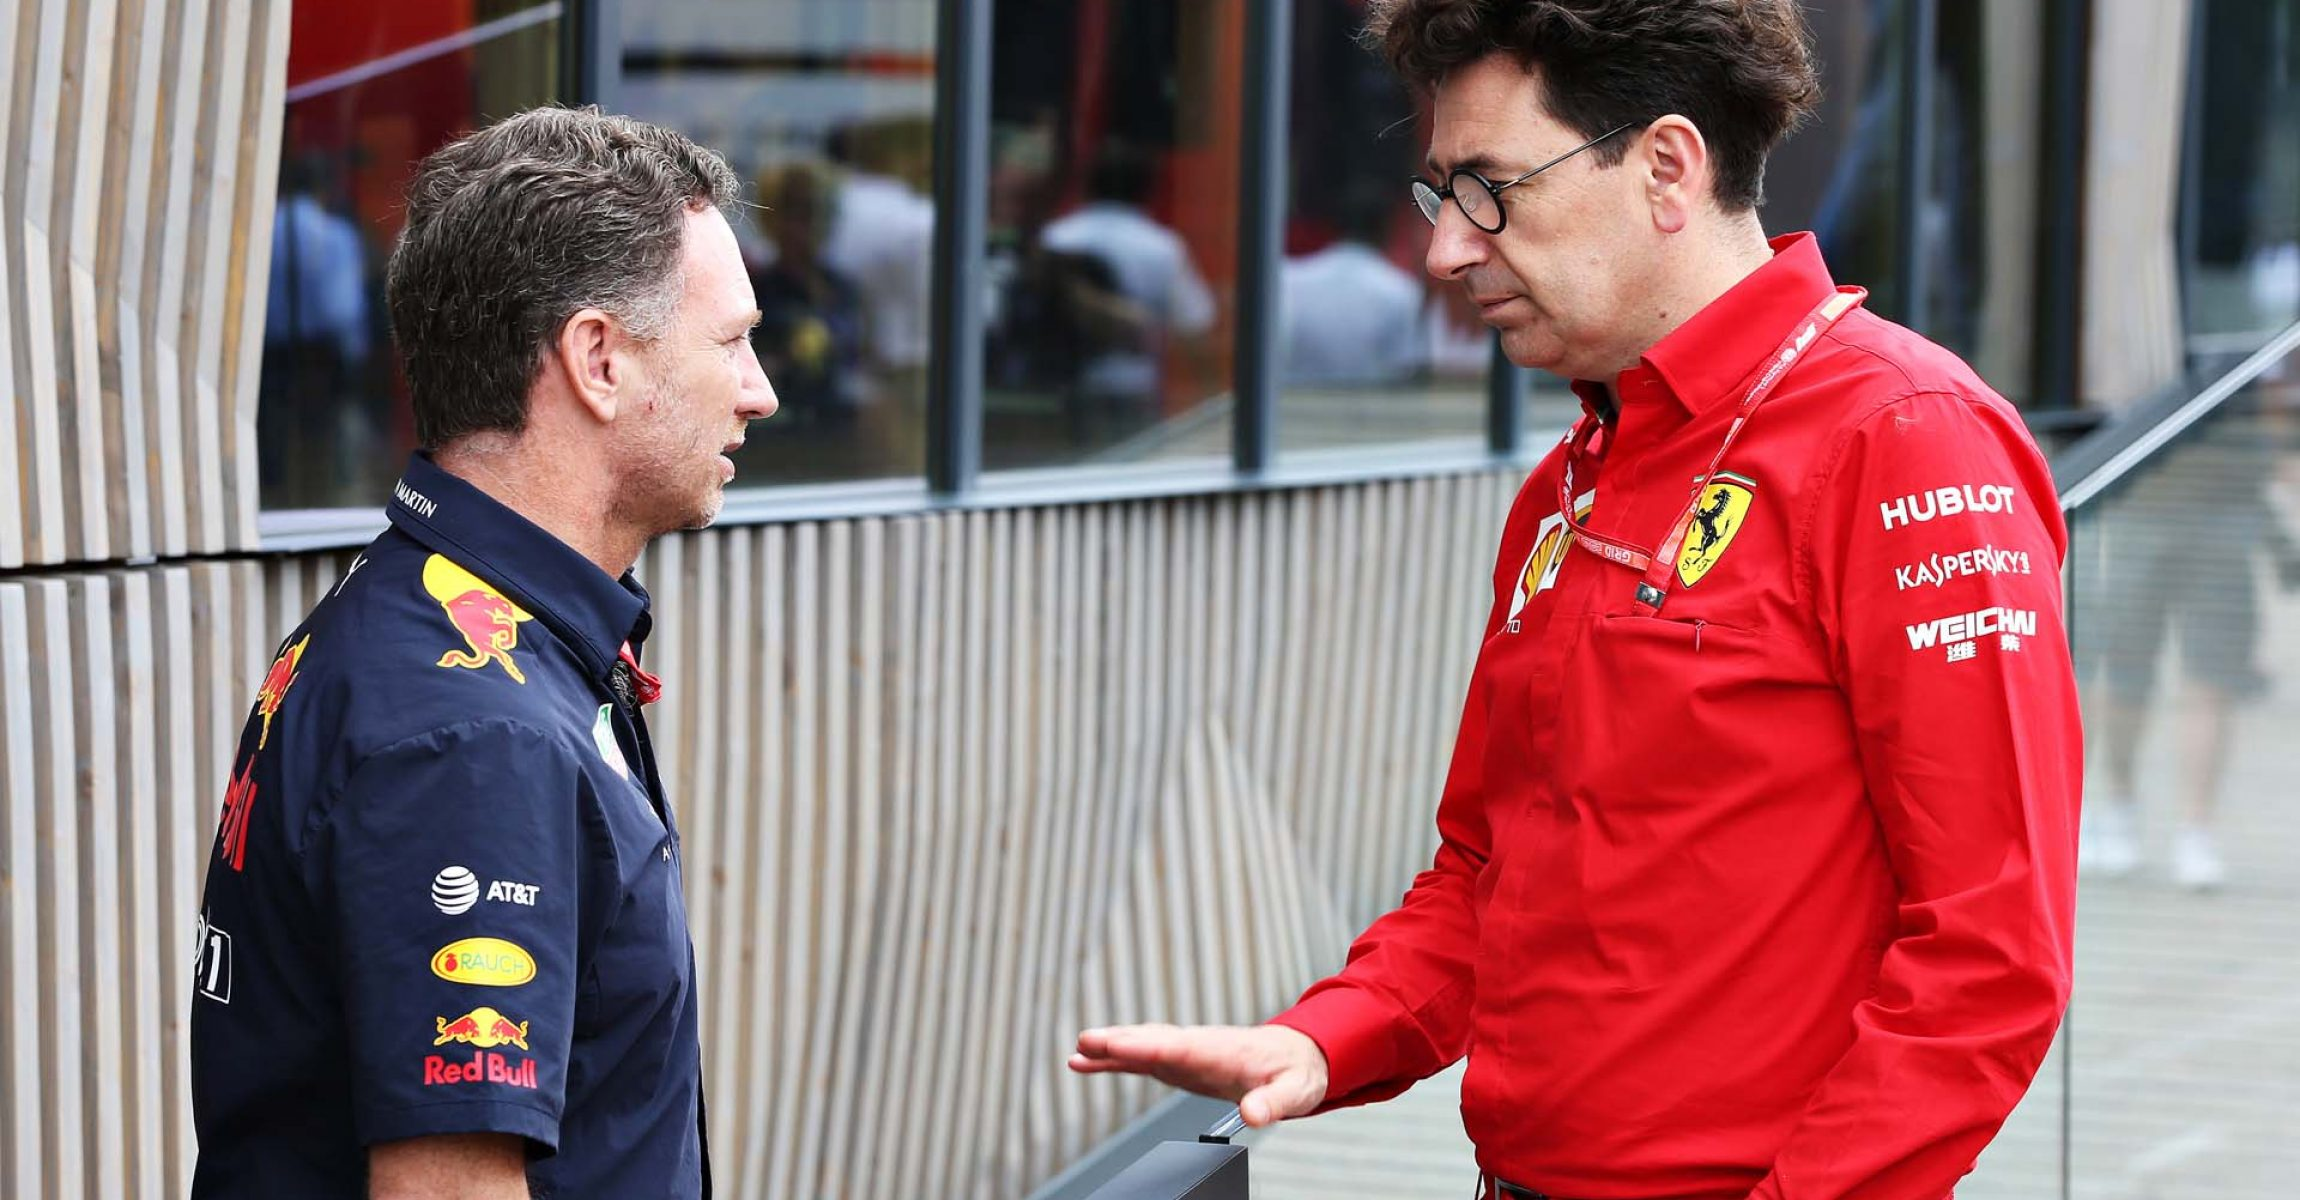 HOCKENHEIM, GERMANY - JULY 27: Red Bull Racing Team Principal Christian Horner and Ferrari Team Principal Mattia Binotto talk in the Paddock before final practice for the F1 Grand Prix of Germany at Hockenheimring on July 27, 2019 in Hockenheim, Germany. (Photo by Charles Coates/Getty Images) // Getty Images / Red Bull Content Pool // AP-212XN7TMN2511 // Usage for editorial use only // Please go to www.redbullcontentpool.com for further information. //